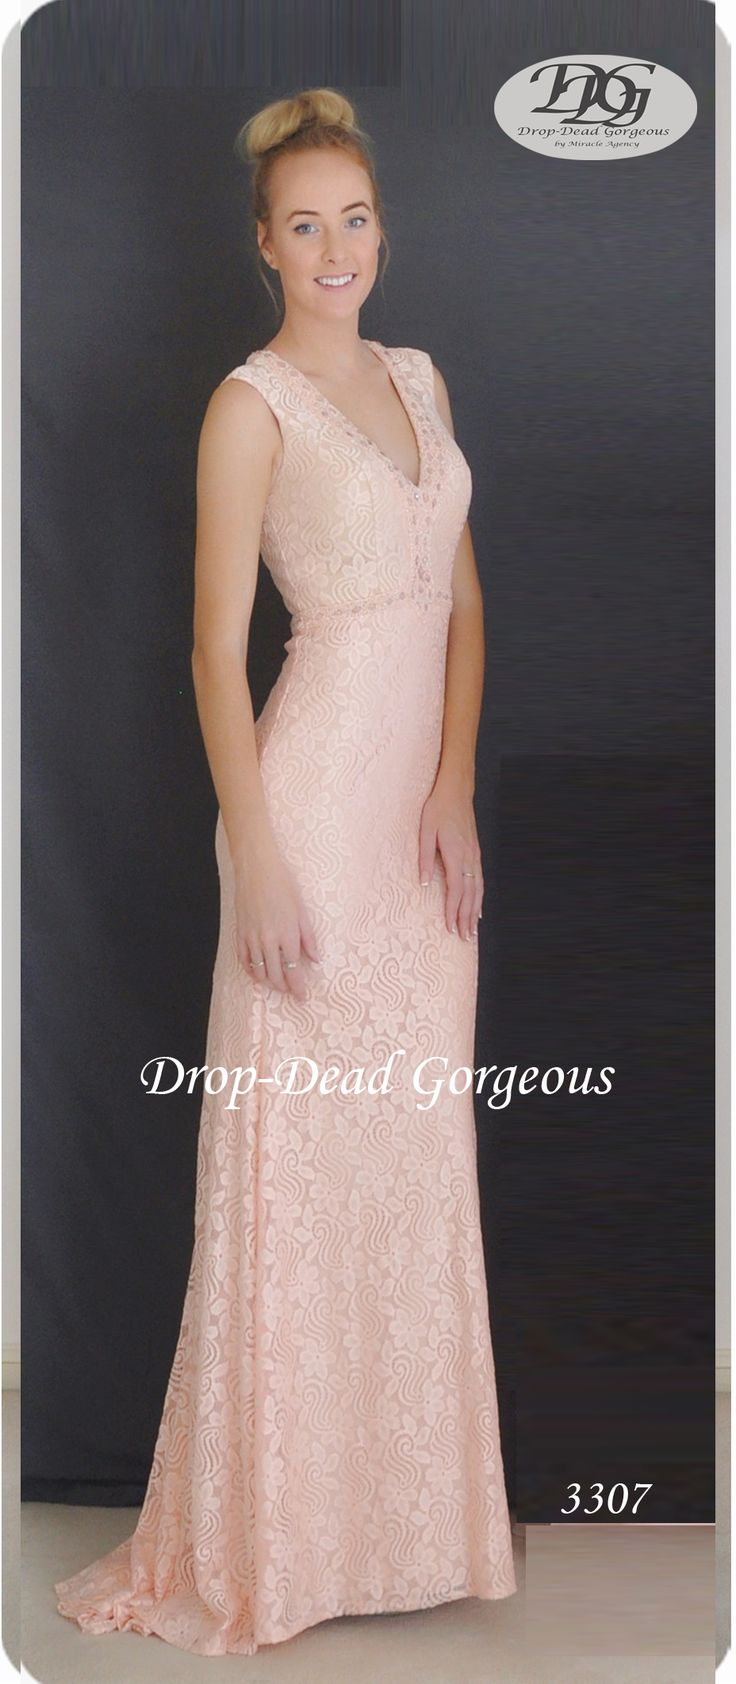 Drop-Dead Gorgeous 2016 Collection  Lace gown with a plunging V neck and tonal hand sewn beaded neckline and waist.  #DropDeadGorgeous #MiracleAgency #BridesmaidsDresses #Lace www.miracleagency.net